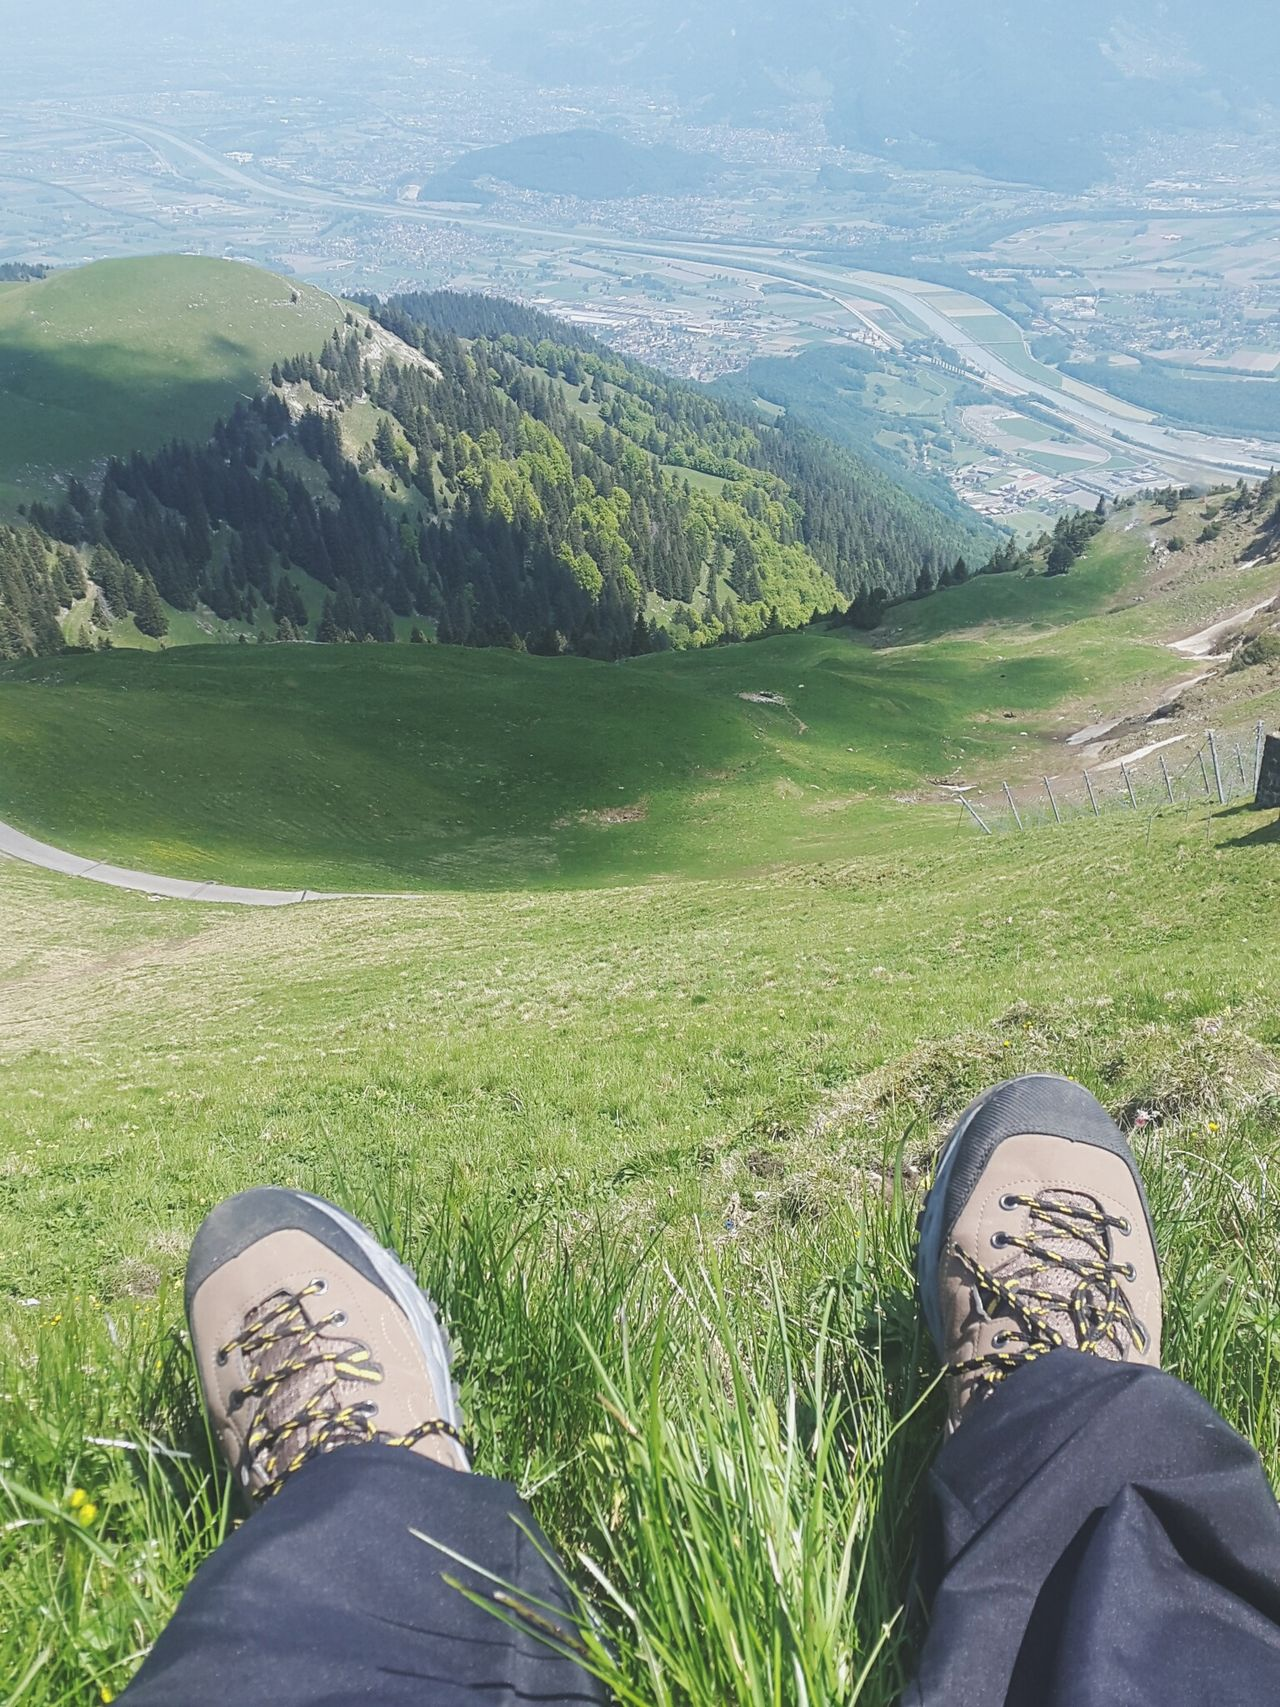 Out Of The Box Shoe Scenics Landscape Grass High Angle View Adventure Human Body Part Switzerland Grass Majestic Nature Awe Outdoor Environmental Conservation Tracks Longing Field Mountain Tranquil Scene